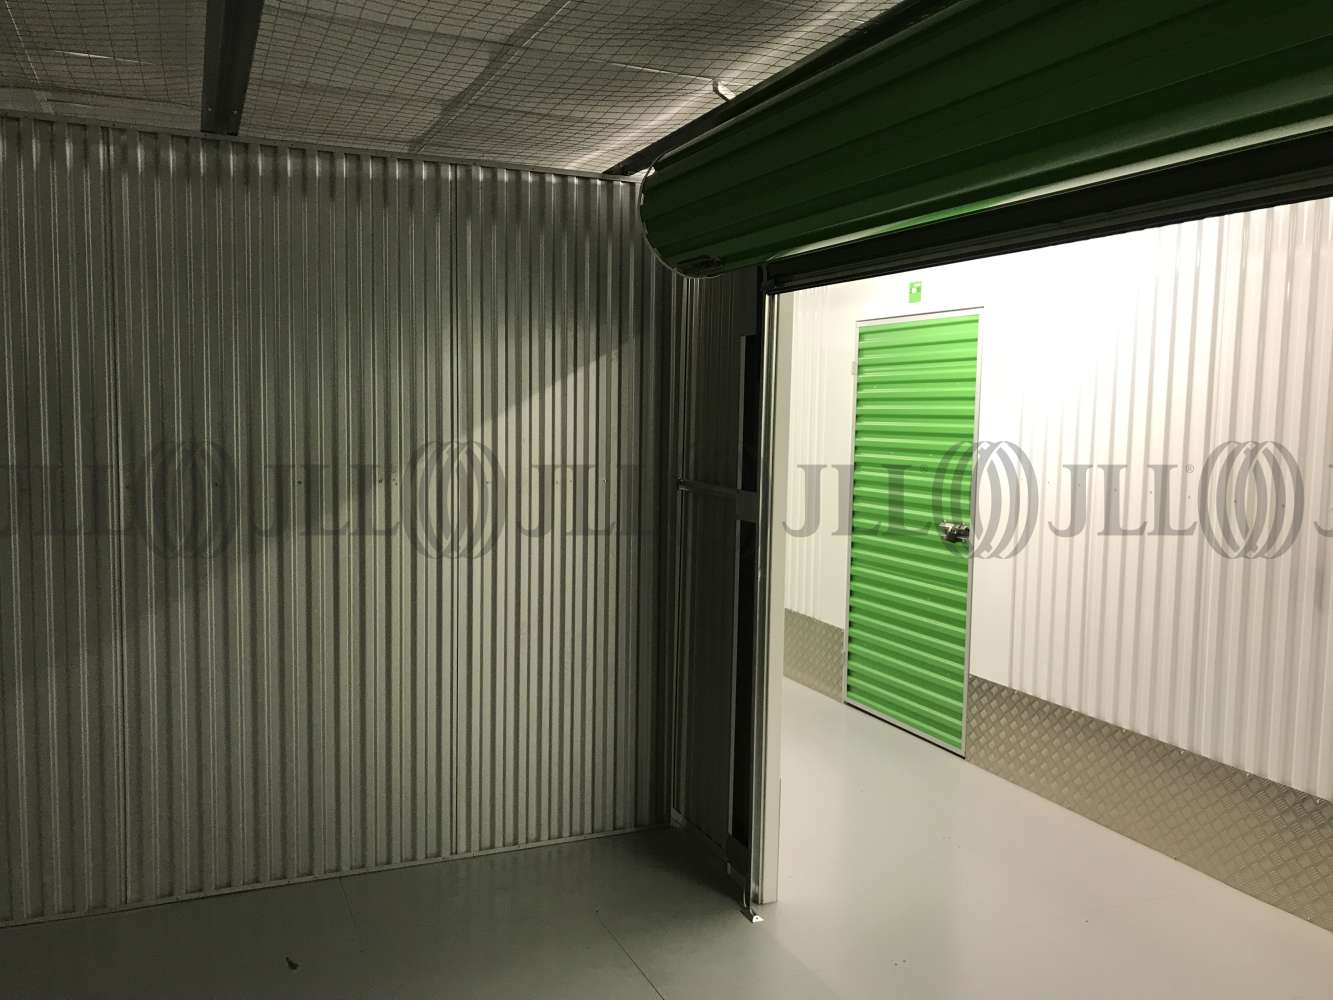 Industrial Waltham abbey, EN9 1JD - Commercial storage and office space - 0517